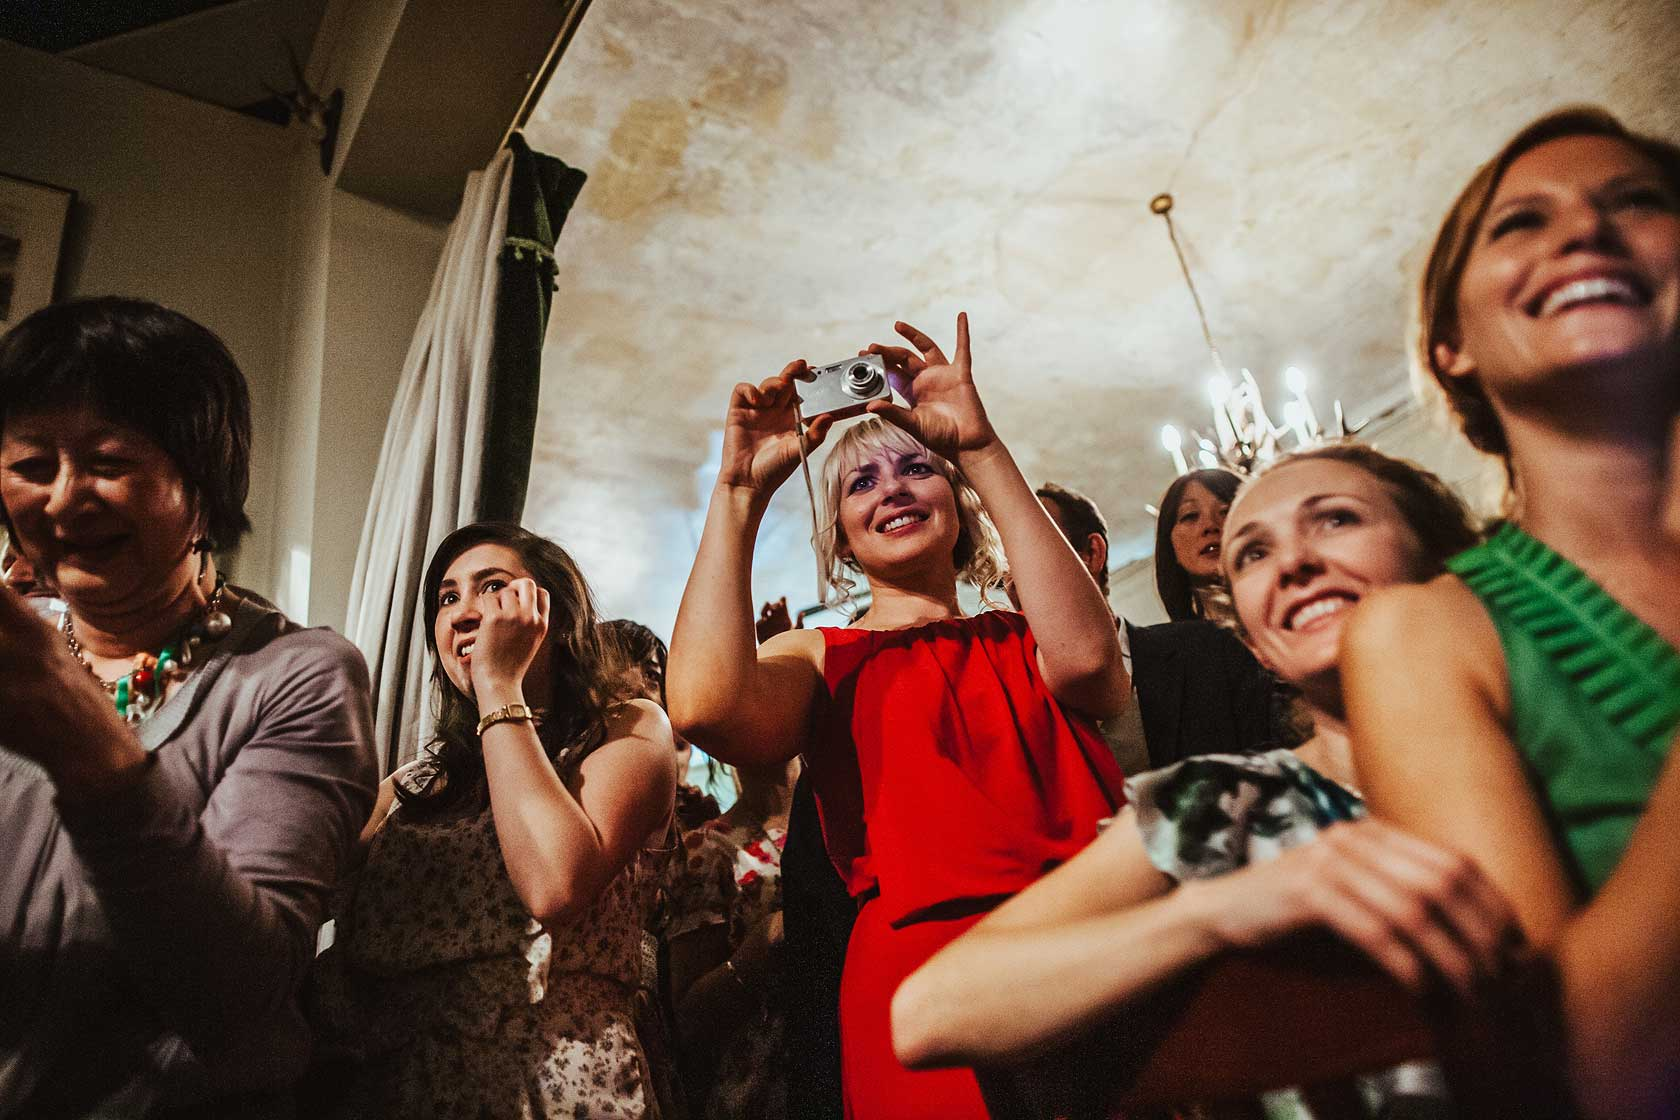 Reportage Wedding Photography at The Bull and Last